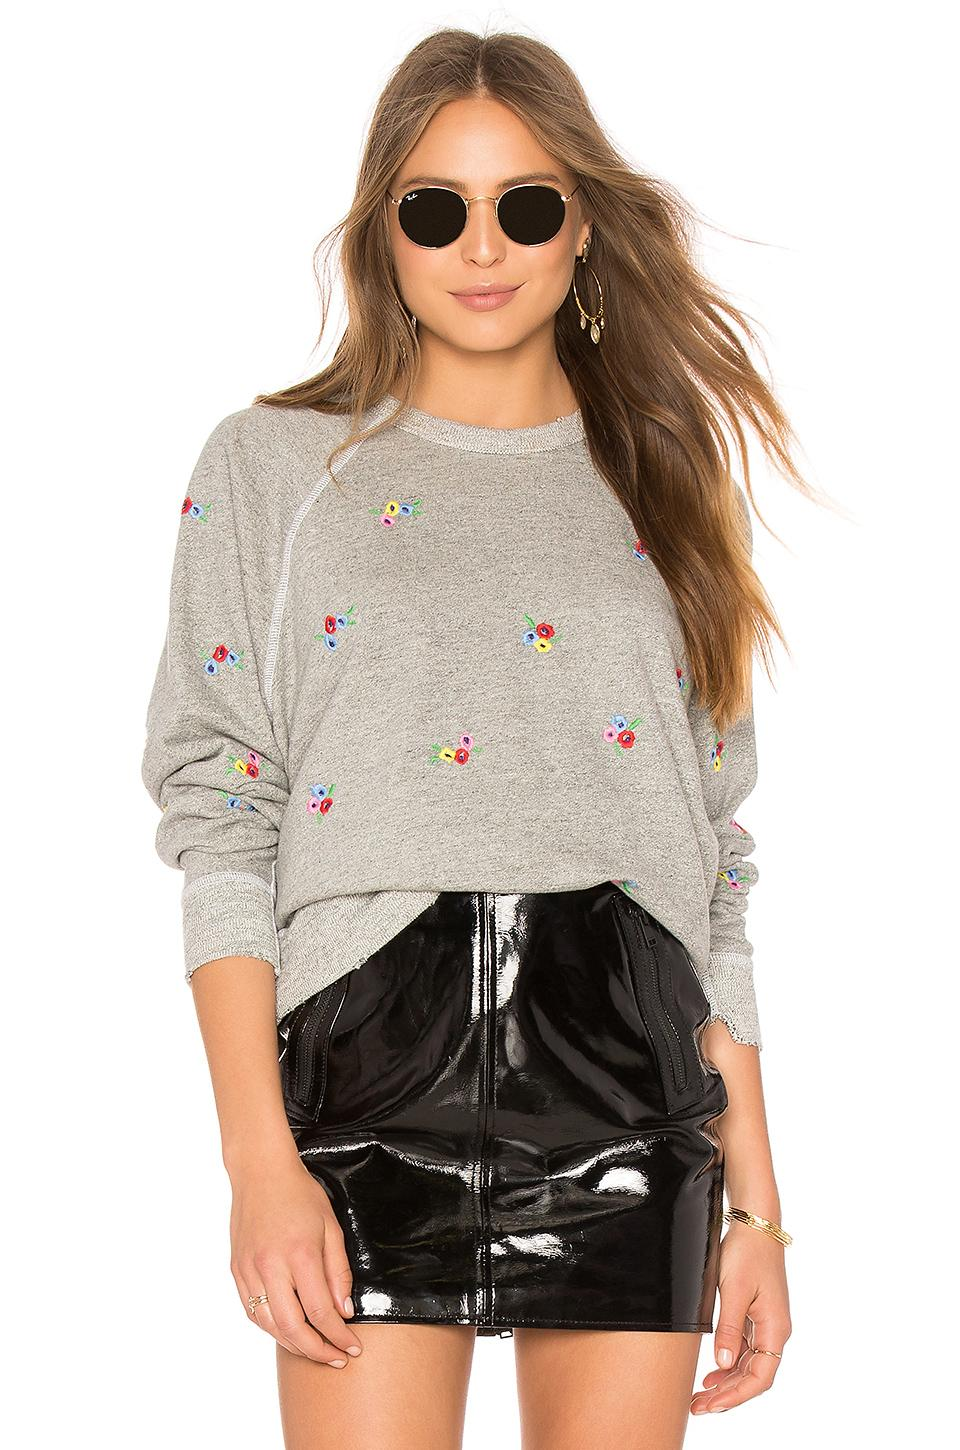 The Great Embroidered College Sweatshirt In Varsity Grey With Bouquet Embr